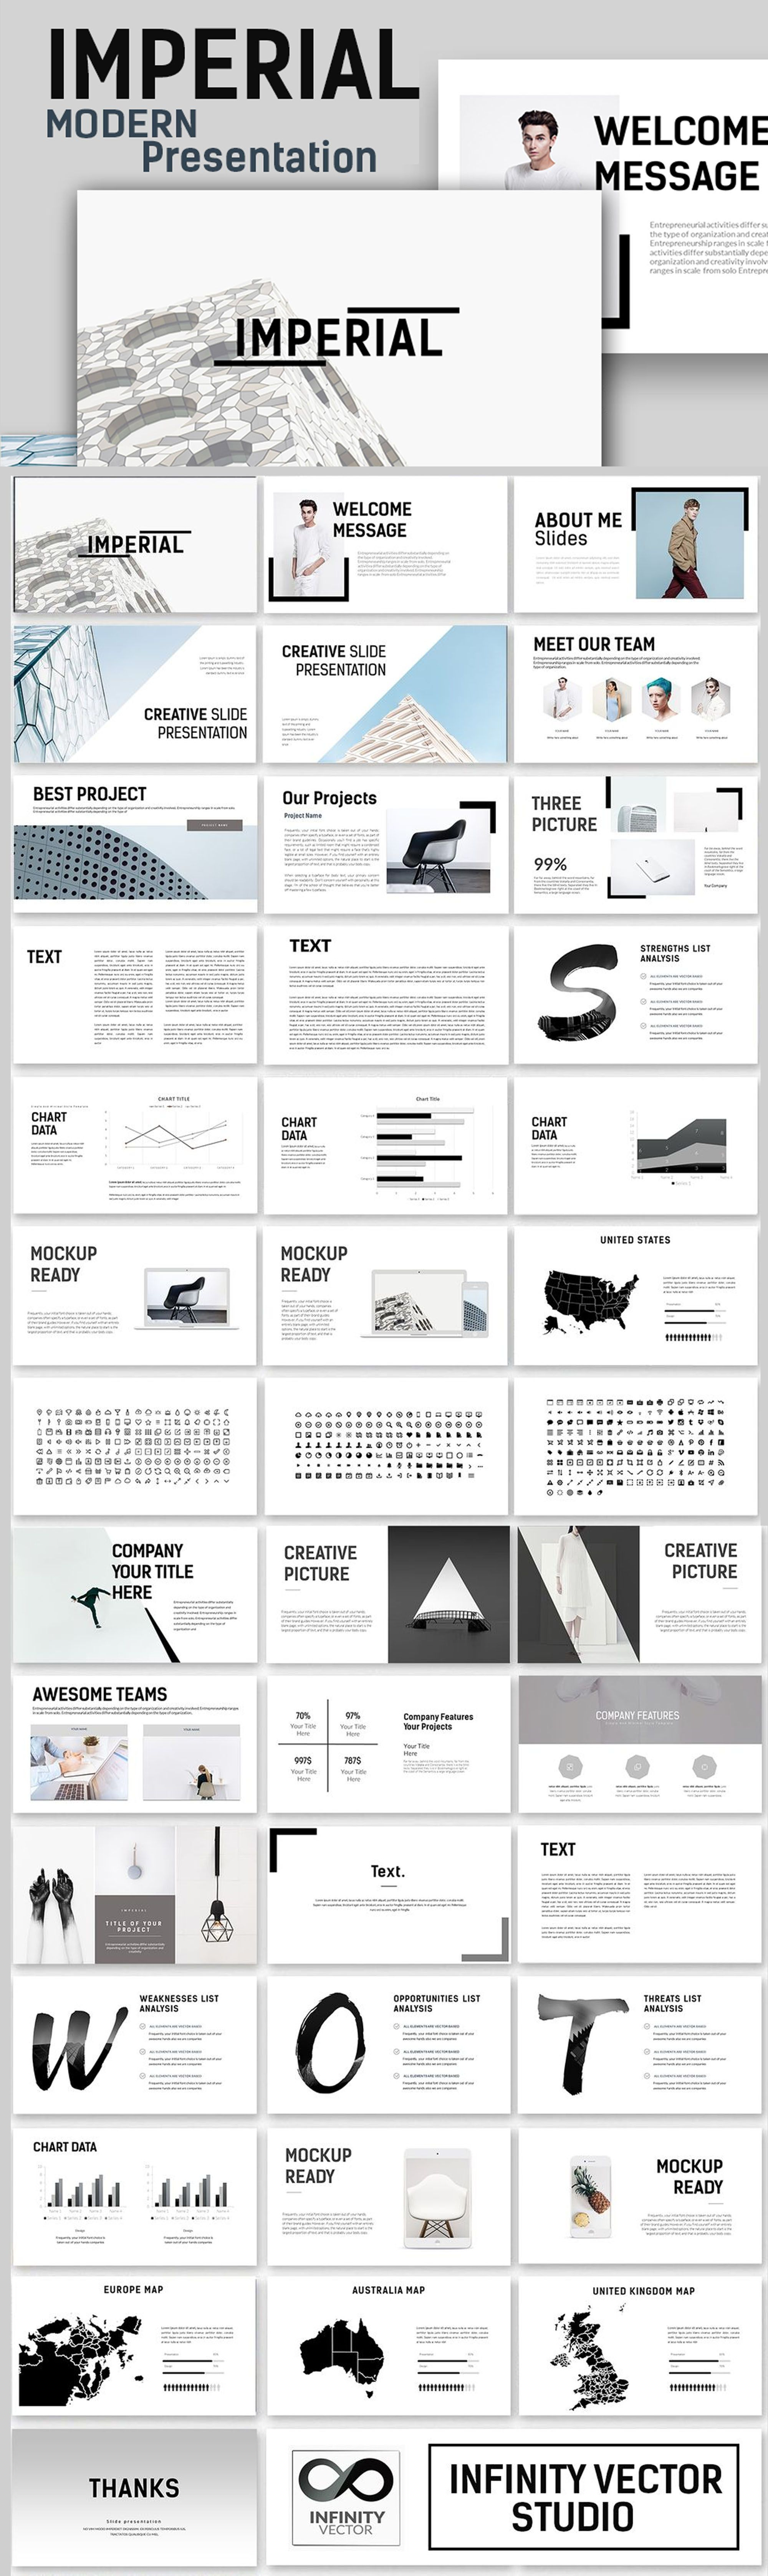 imperial modern powerpoint template creative presentation ideas